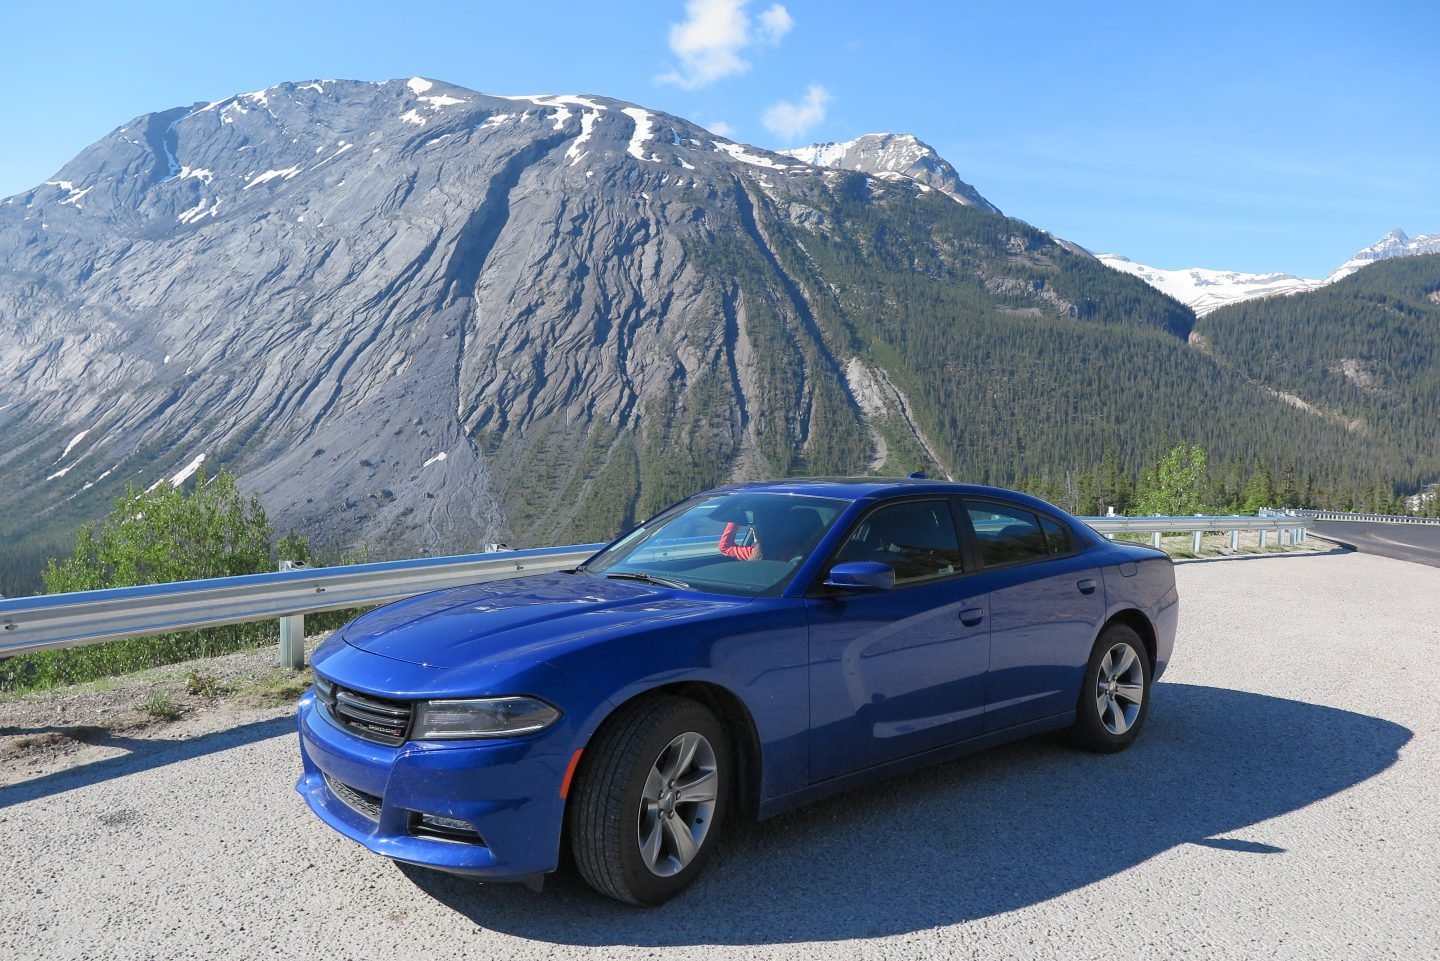 HOW TO PLAN AND BUDGET FOR A ROADTRIP IN CANADA